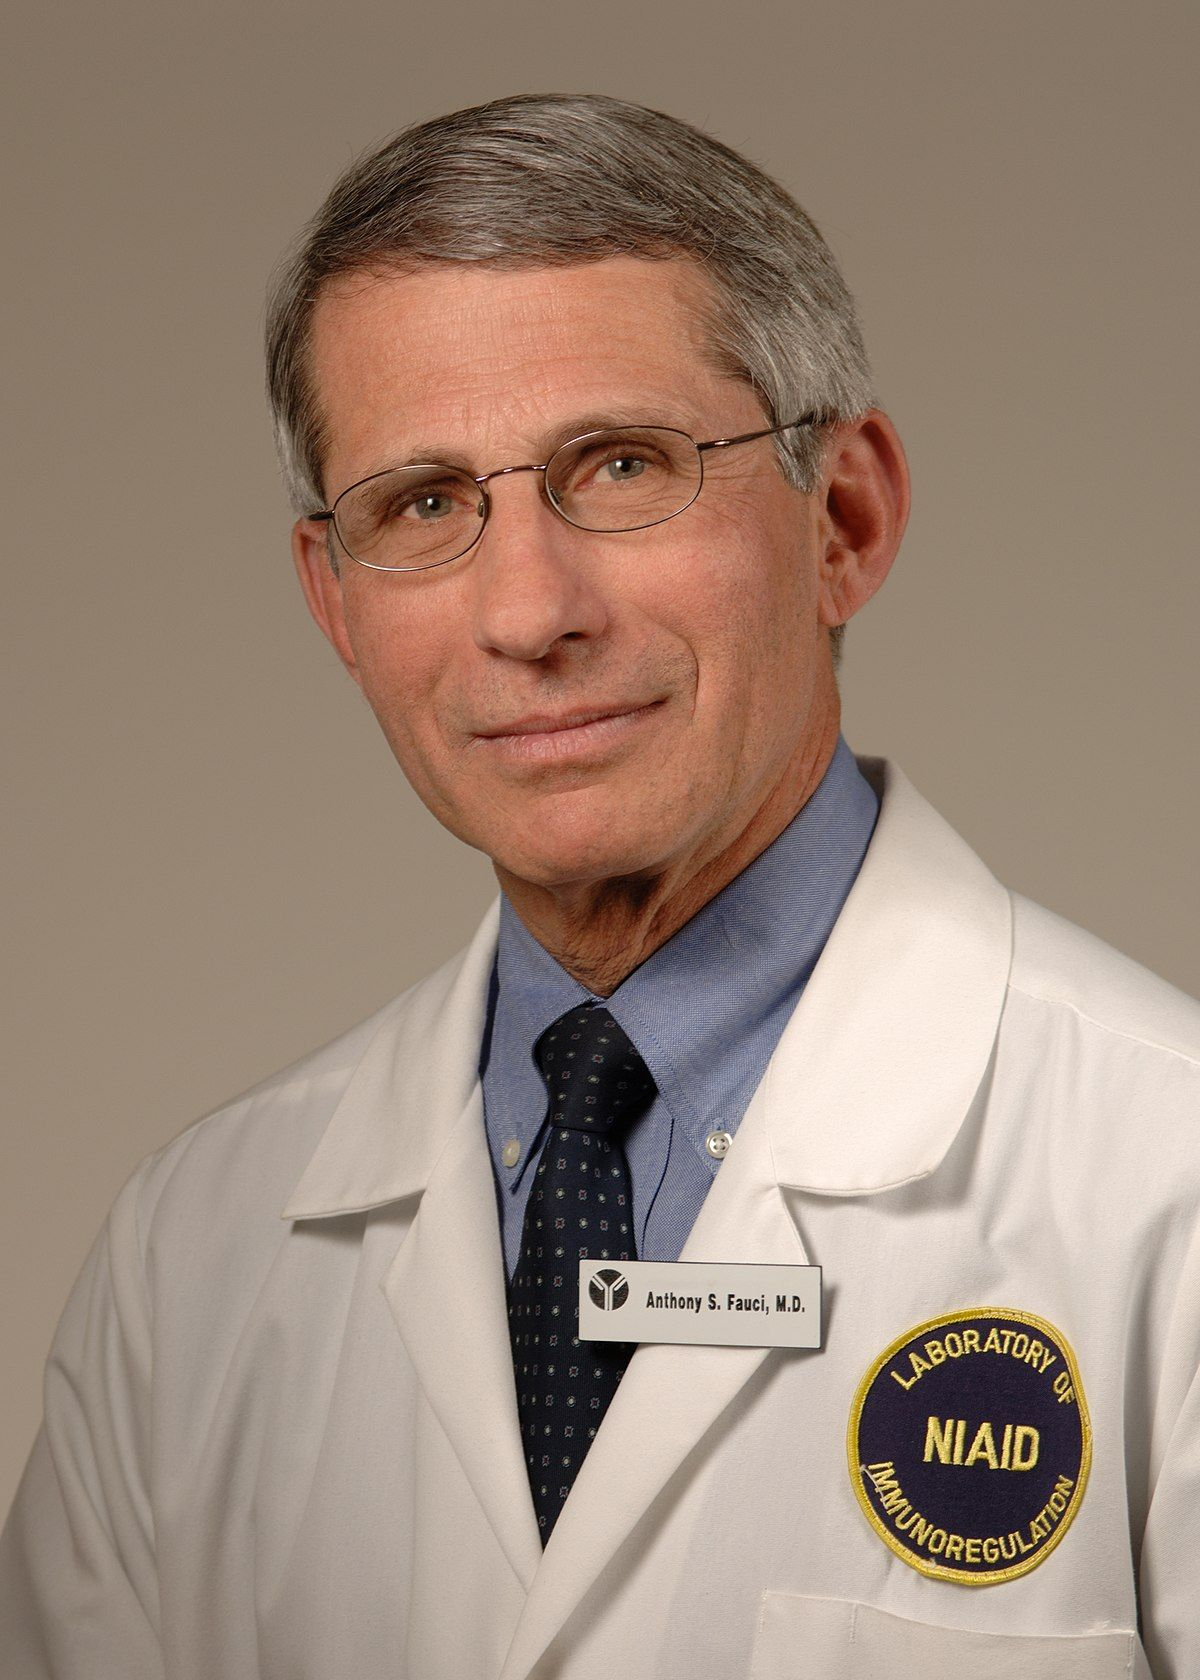 Dr. Anthony Fauci Wikipedia New York in 2020 Anthony